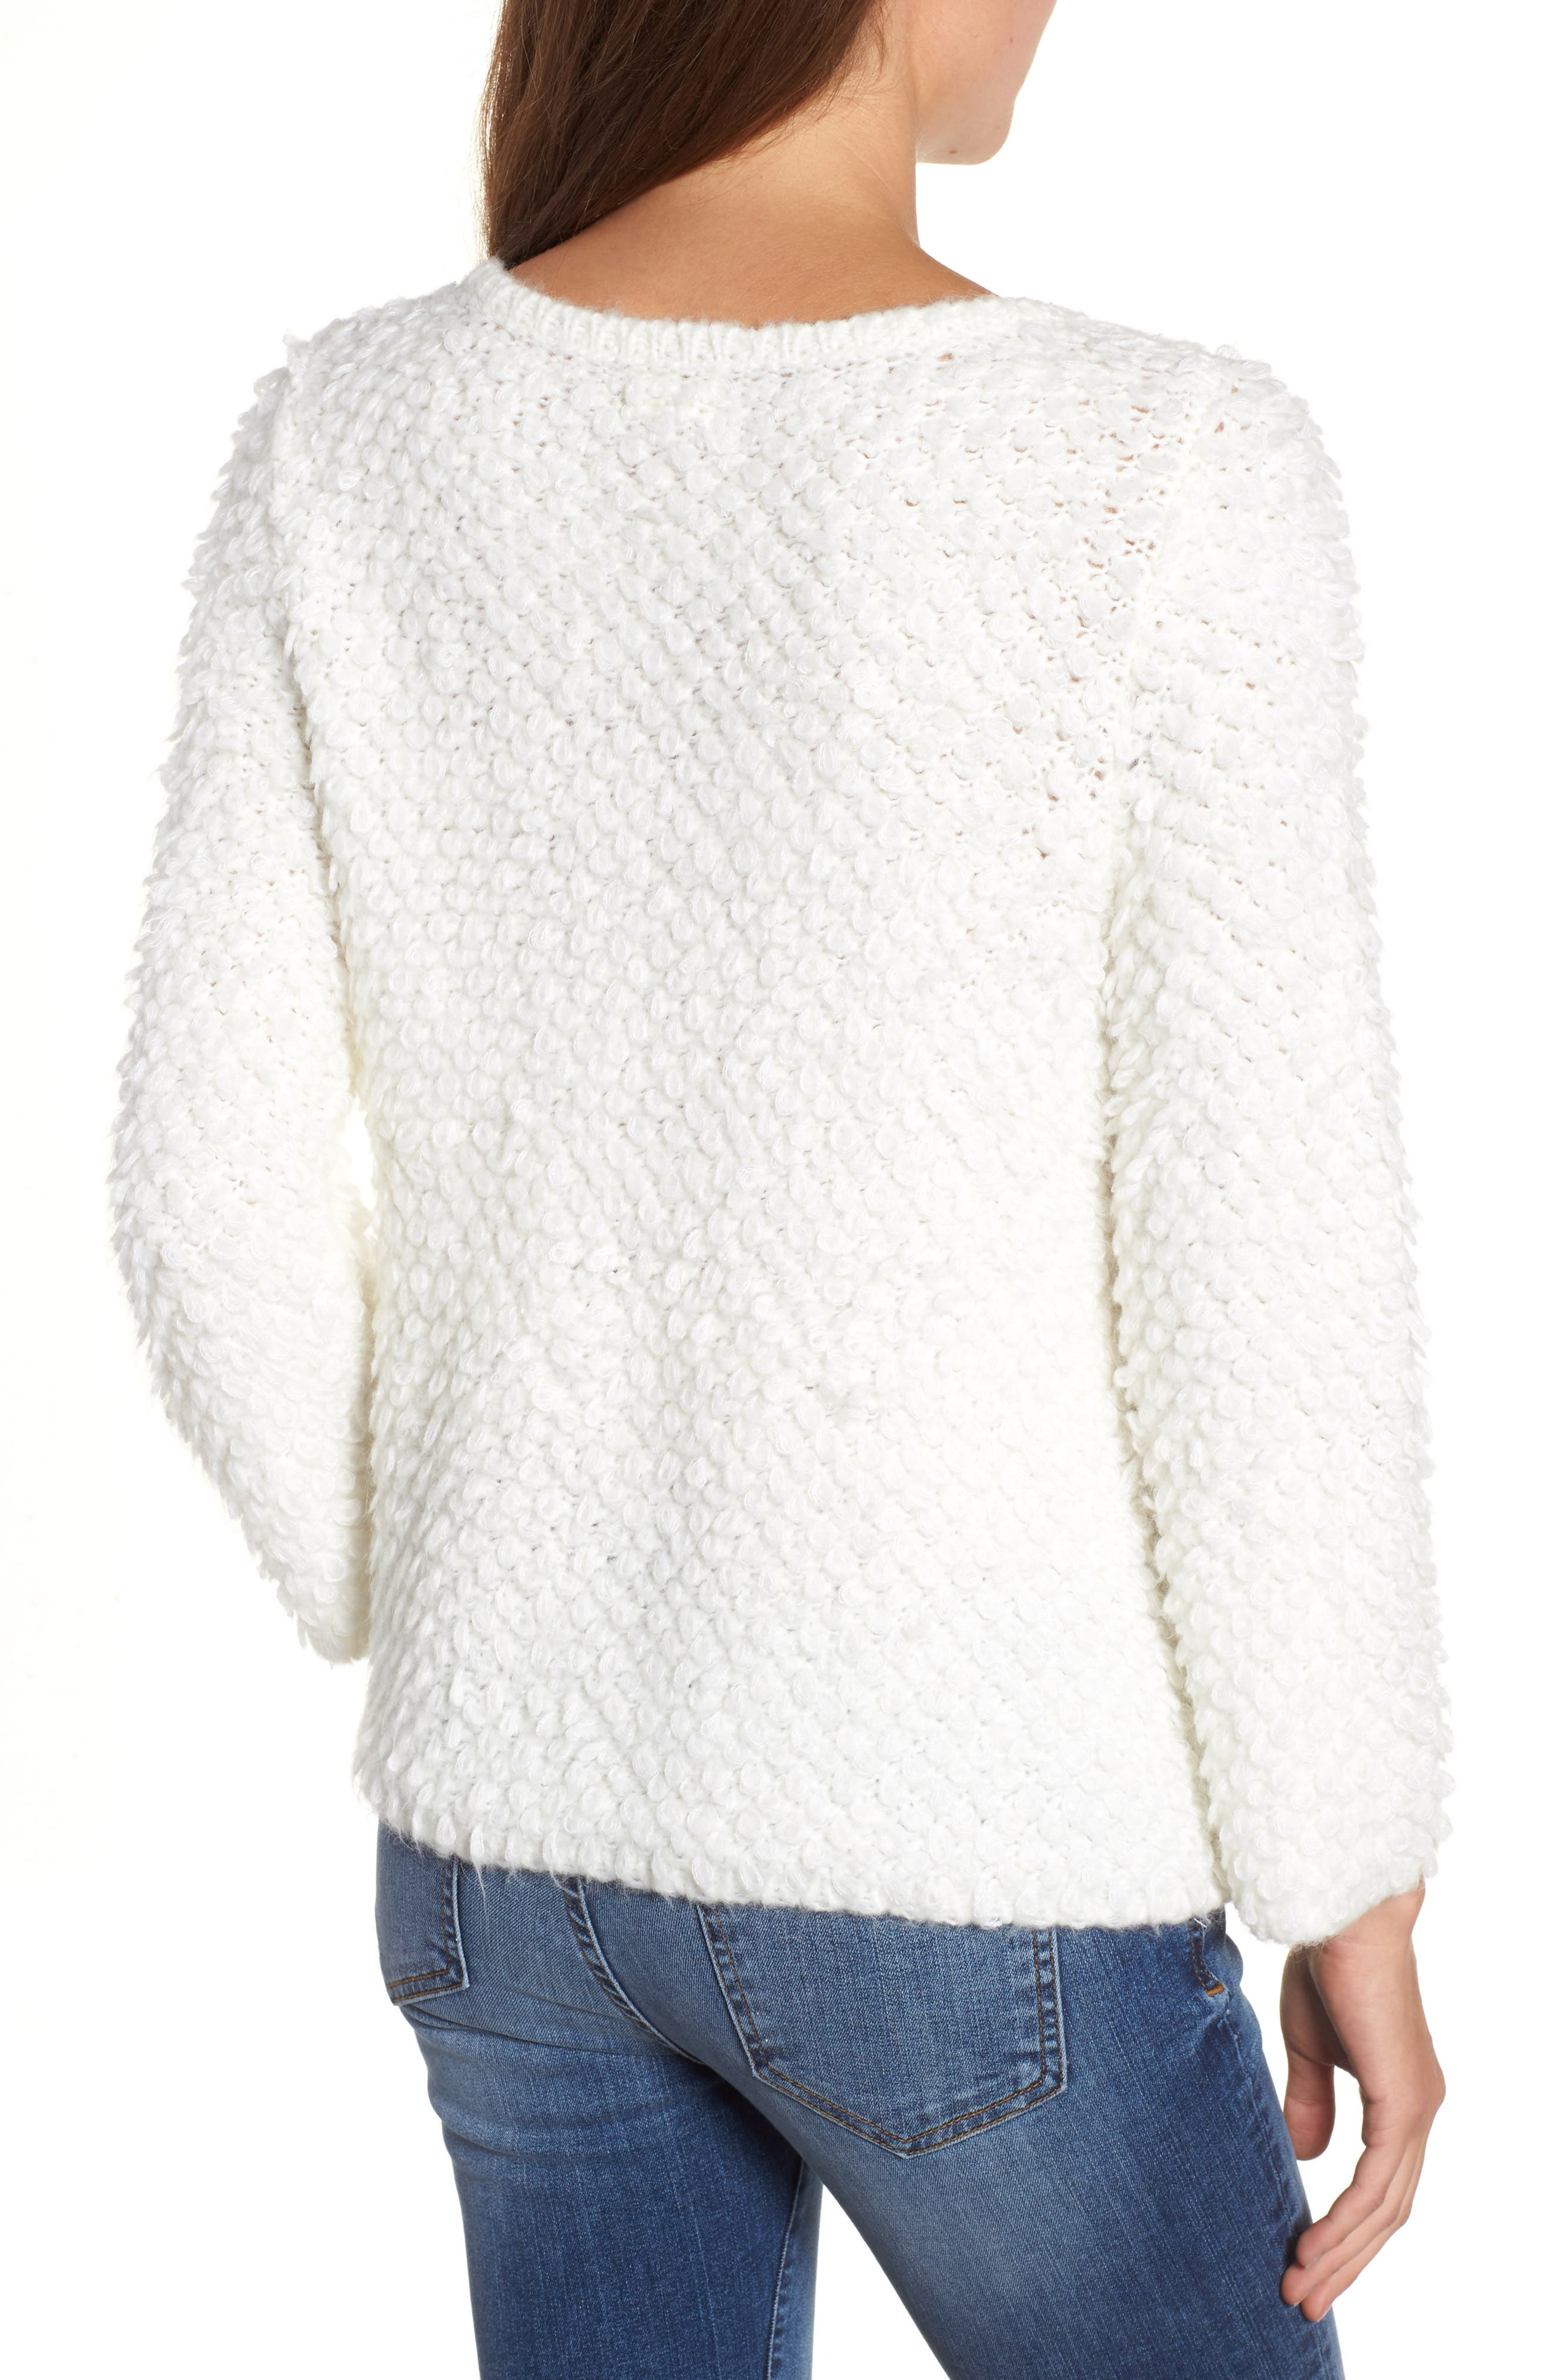 Loop Stitch Crewneck Sweater,                             Alternate thumbnail 2, color,                             Ivory Cloud